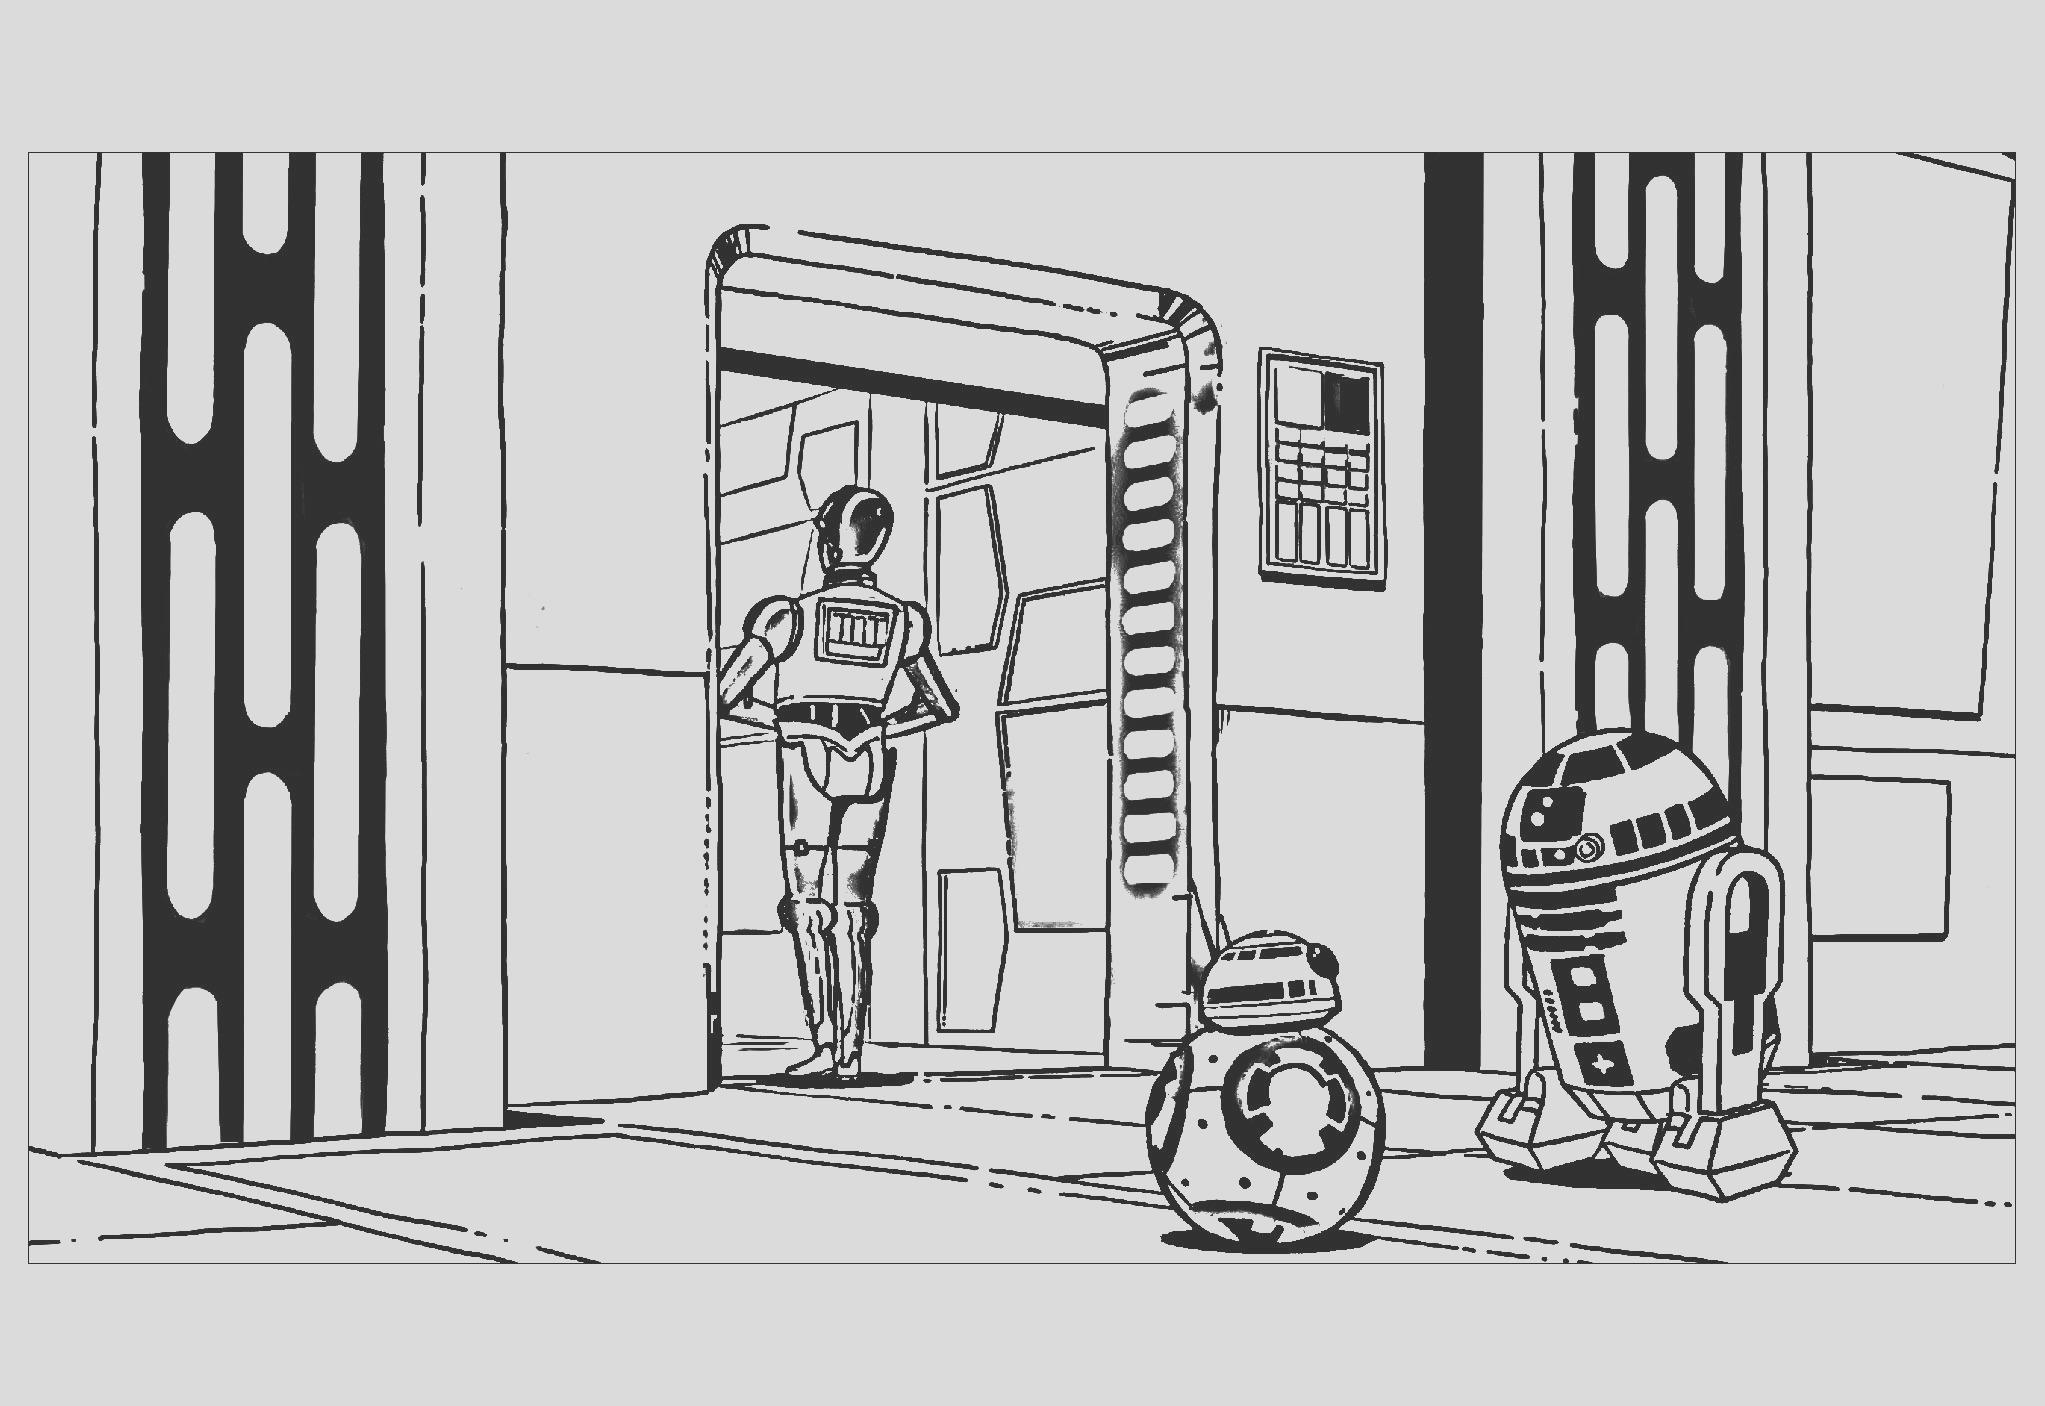 image=movie posters coloring robots star wars r2d2 c3po bb8 1